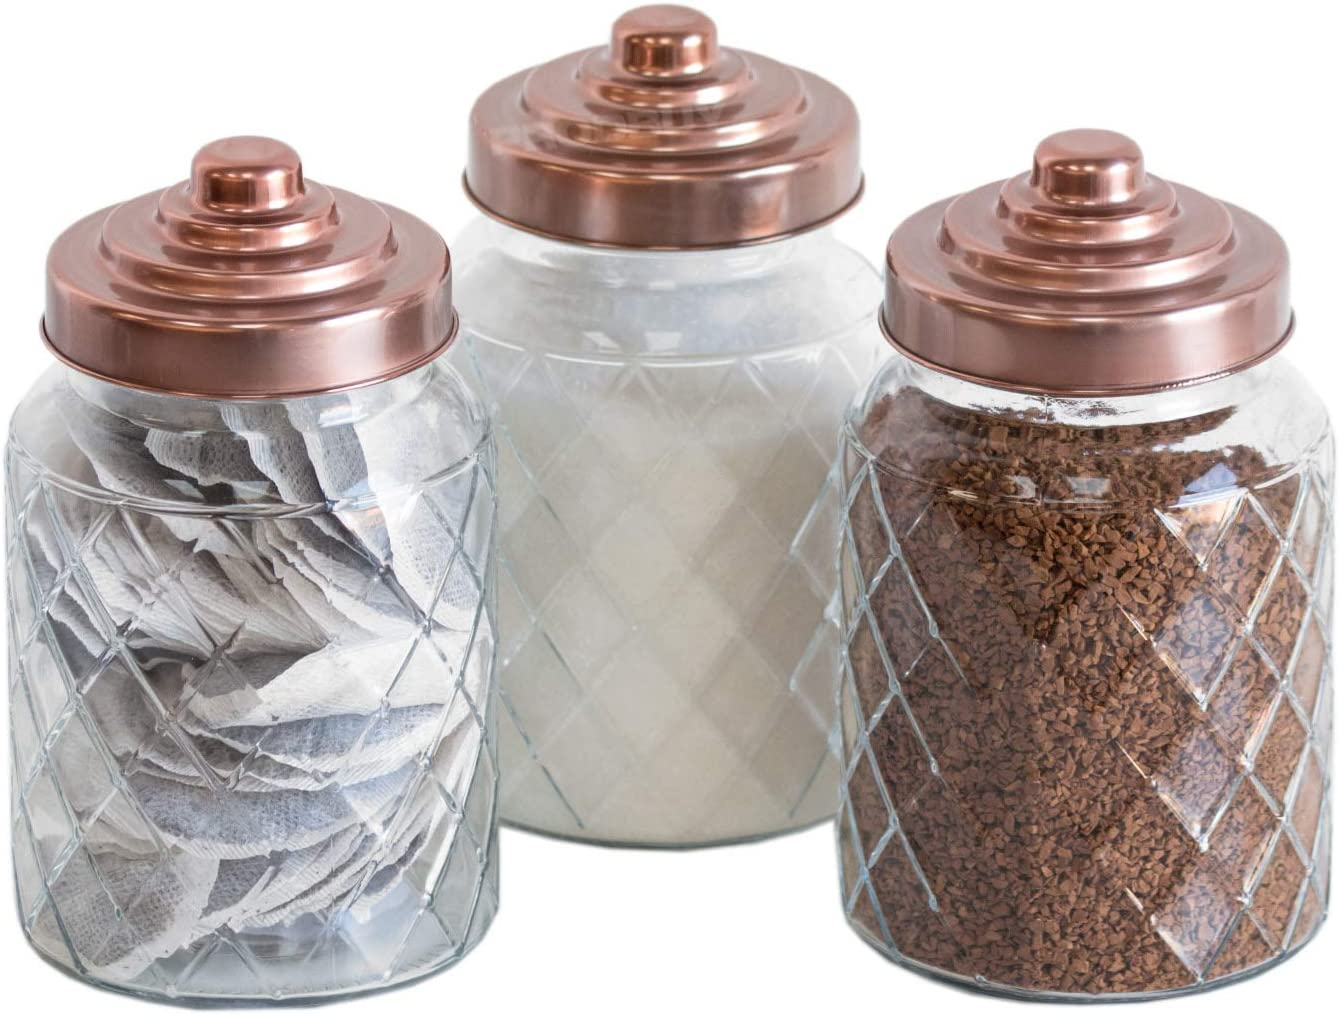 3 x 1000ml Glass Storage Canisters with Copper Coloured Lids